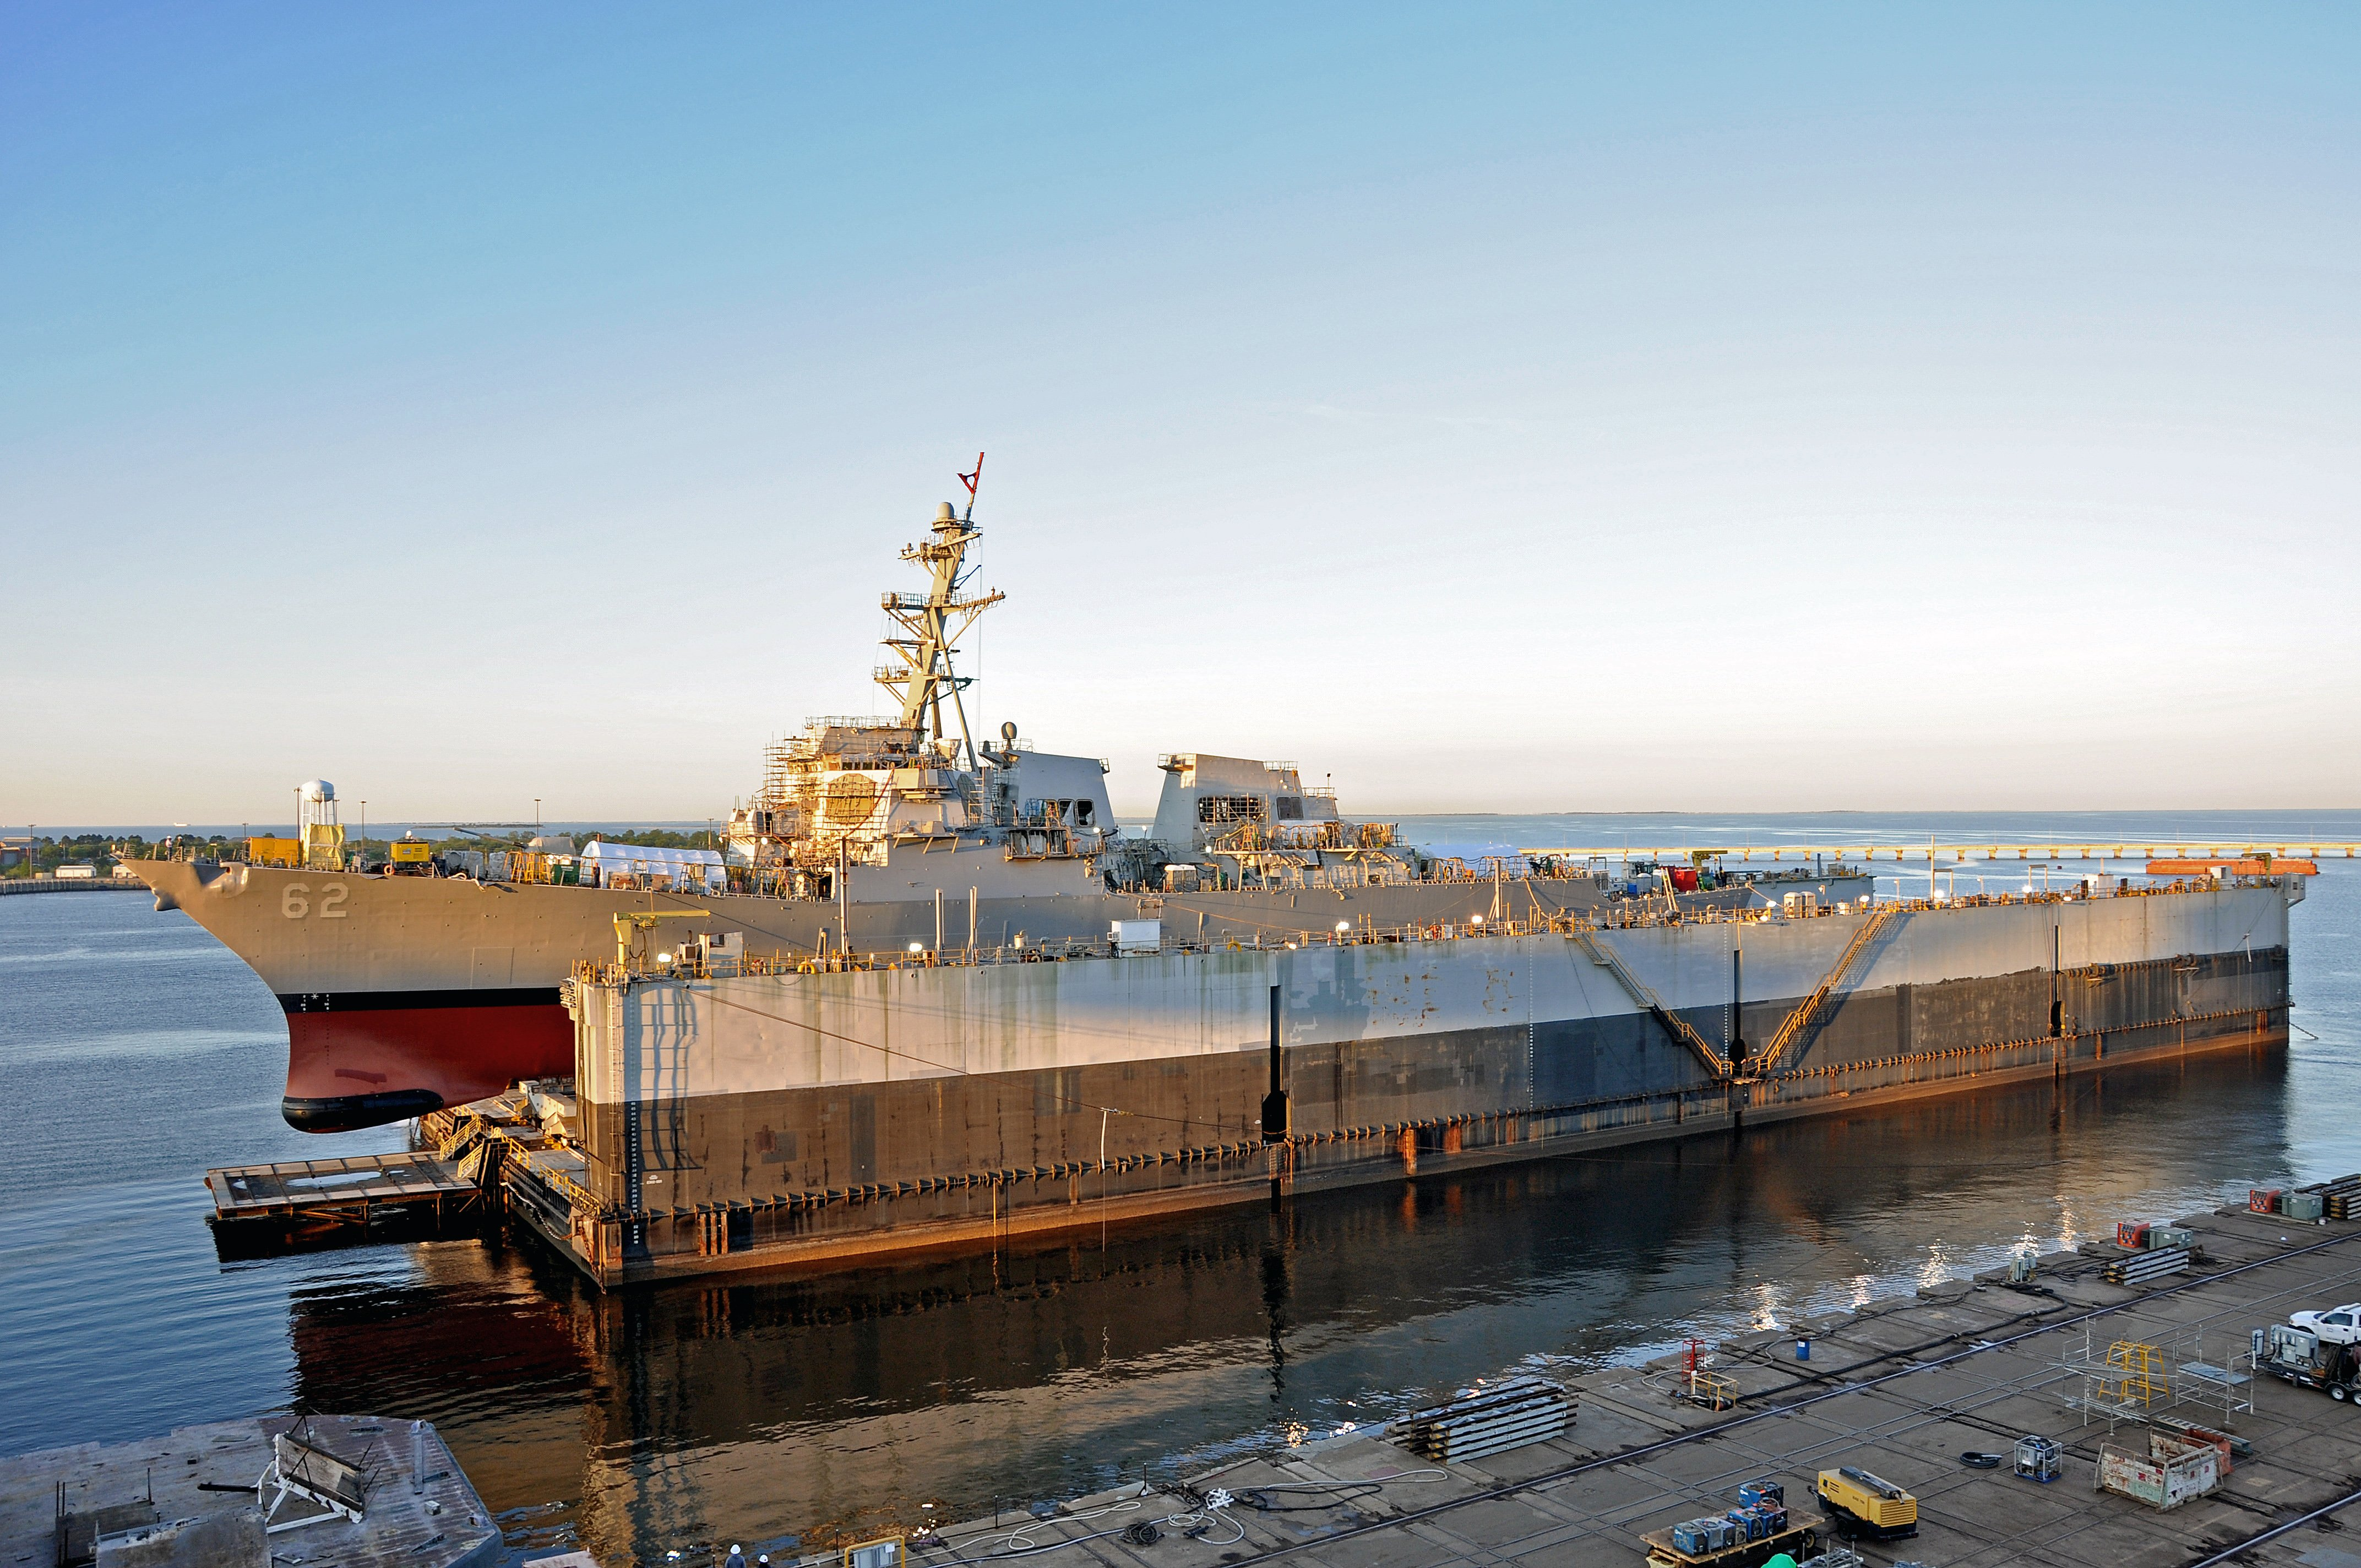 USS Fitzgerald Leaves Mississippi Drydock After More Than a Year of Repairs